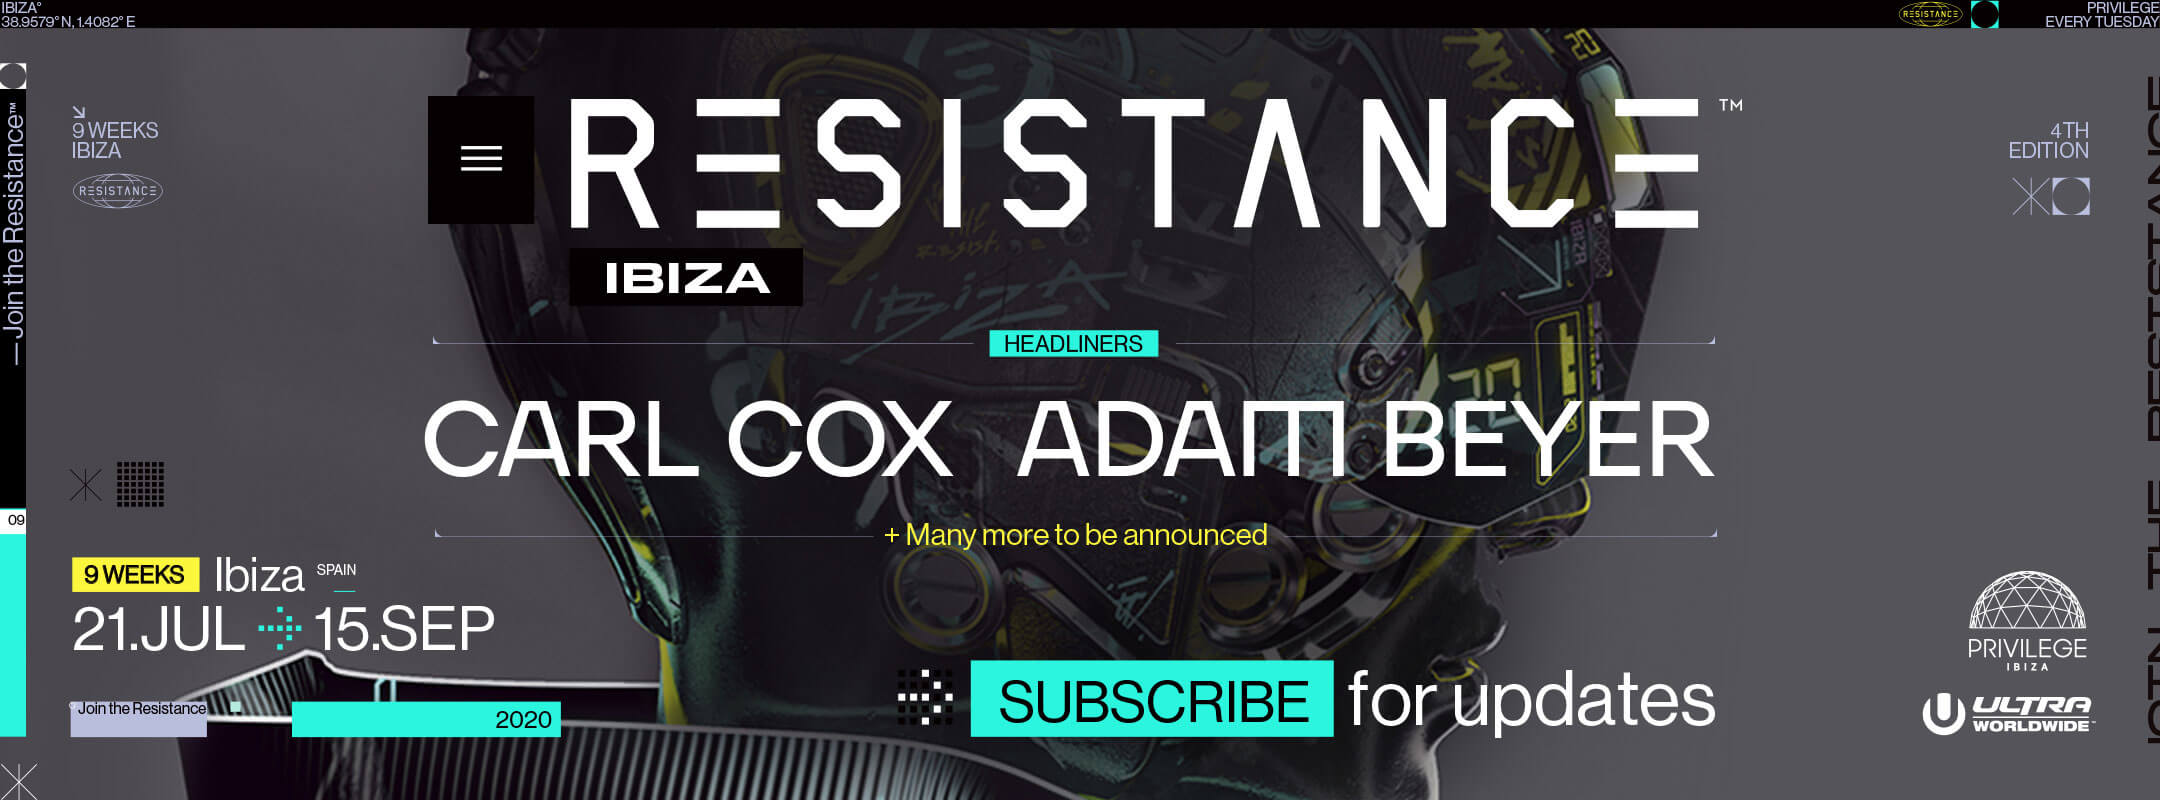 Subscribe for Updates to Resistance Ibiza